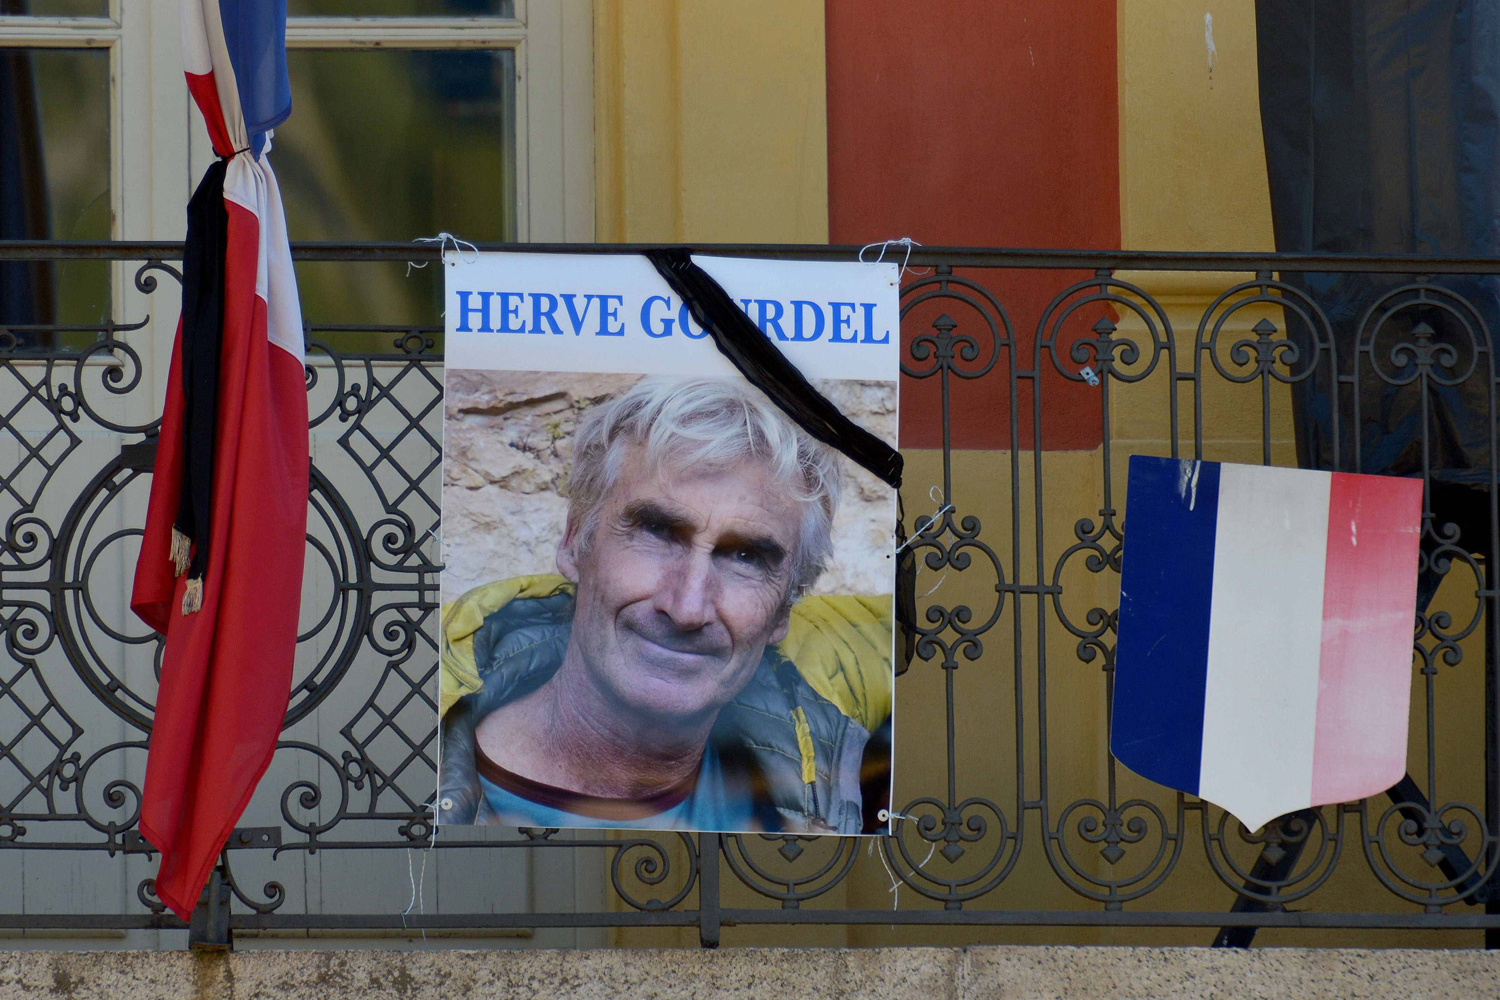 A portrait of Herve Gourdel hangs outside the town hall in Saint-Martin-Vesubie, France, Sept. 25, 2014.